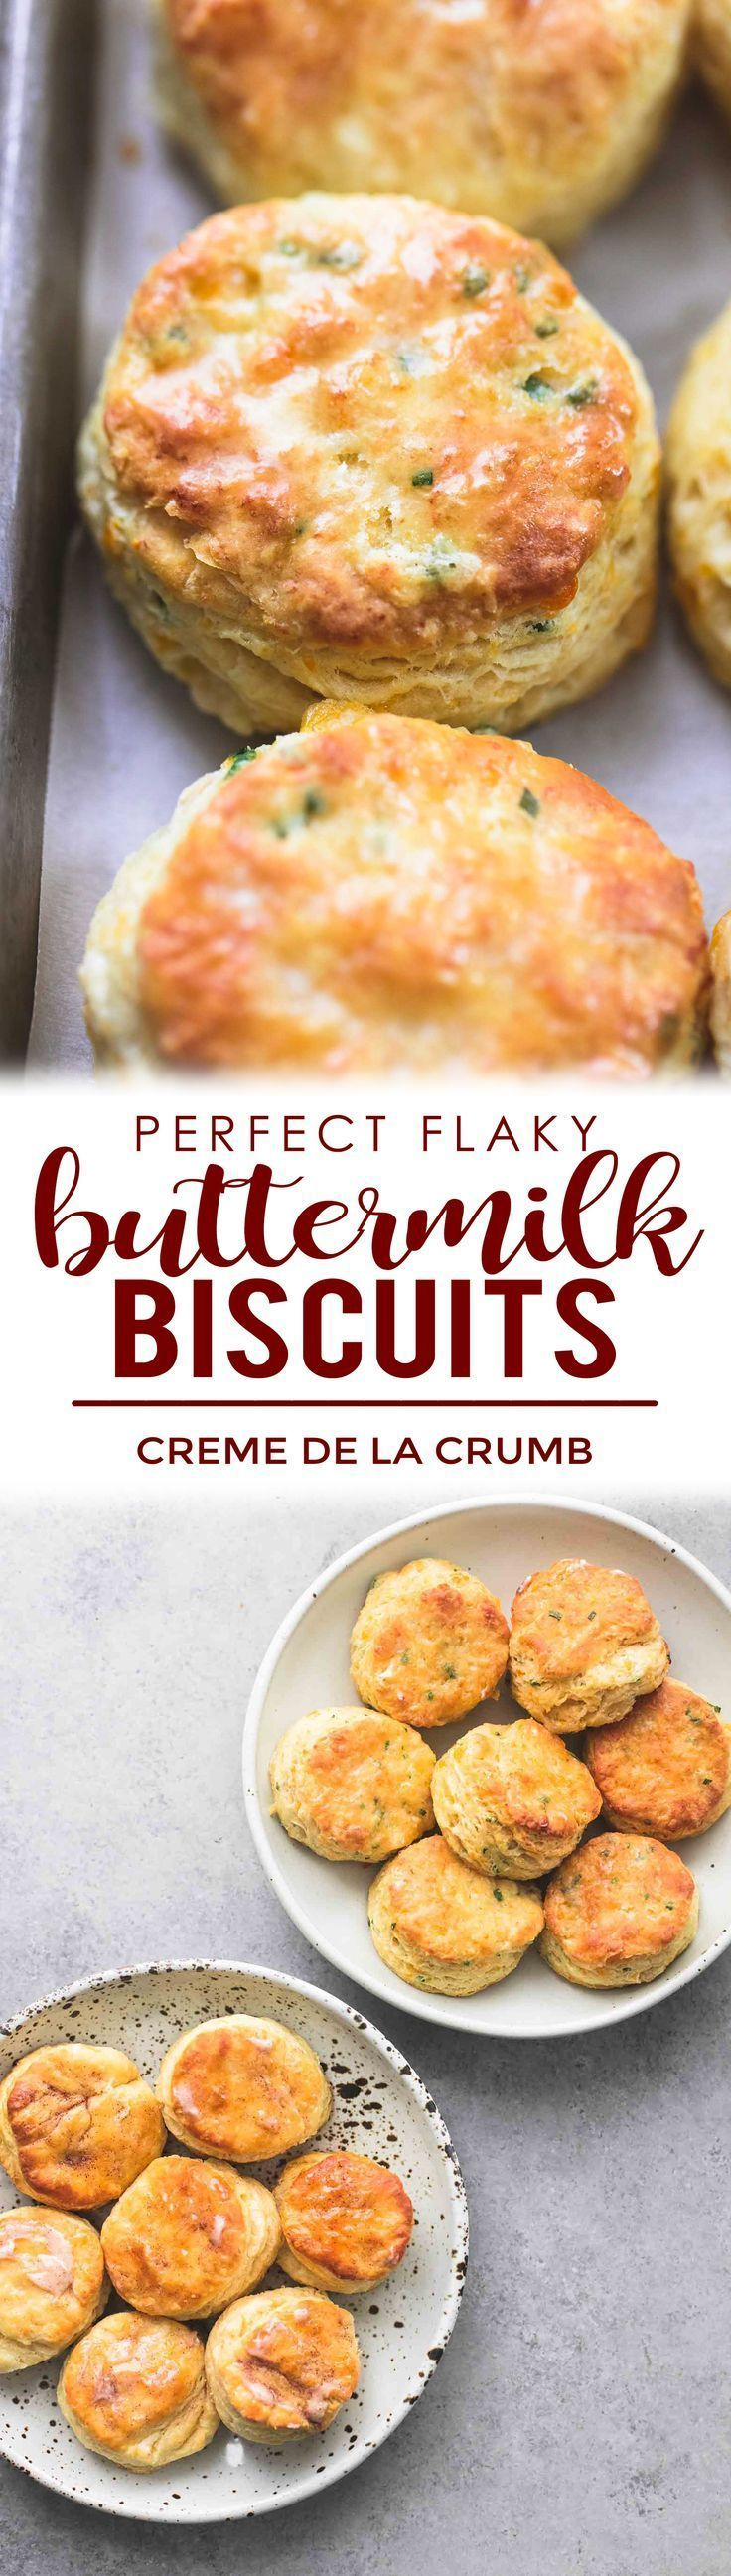 One Dough Two Sweet And Savory Variations Of The Most Perfectly Flaky Buttermilk Biscuits Cheddar Chive And Hon Buttermilk Biscuits Recipes Cooking Recipes